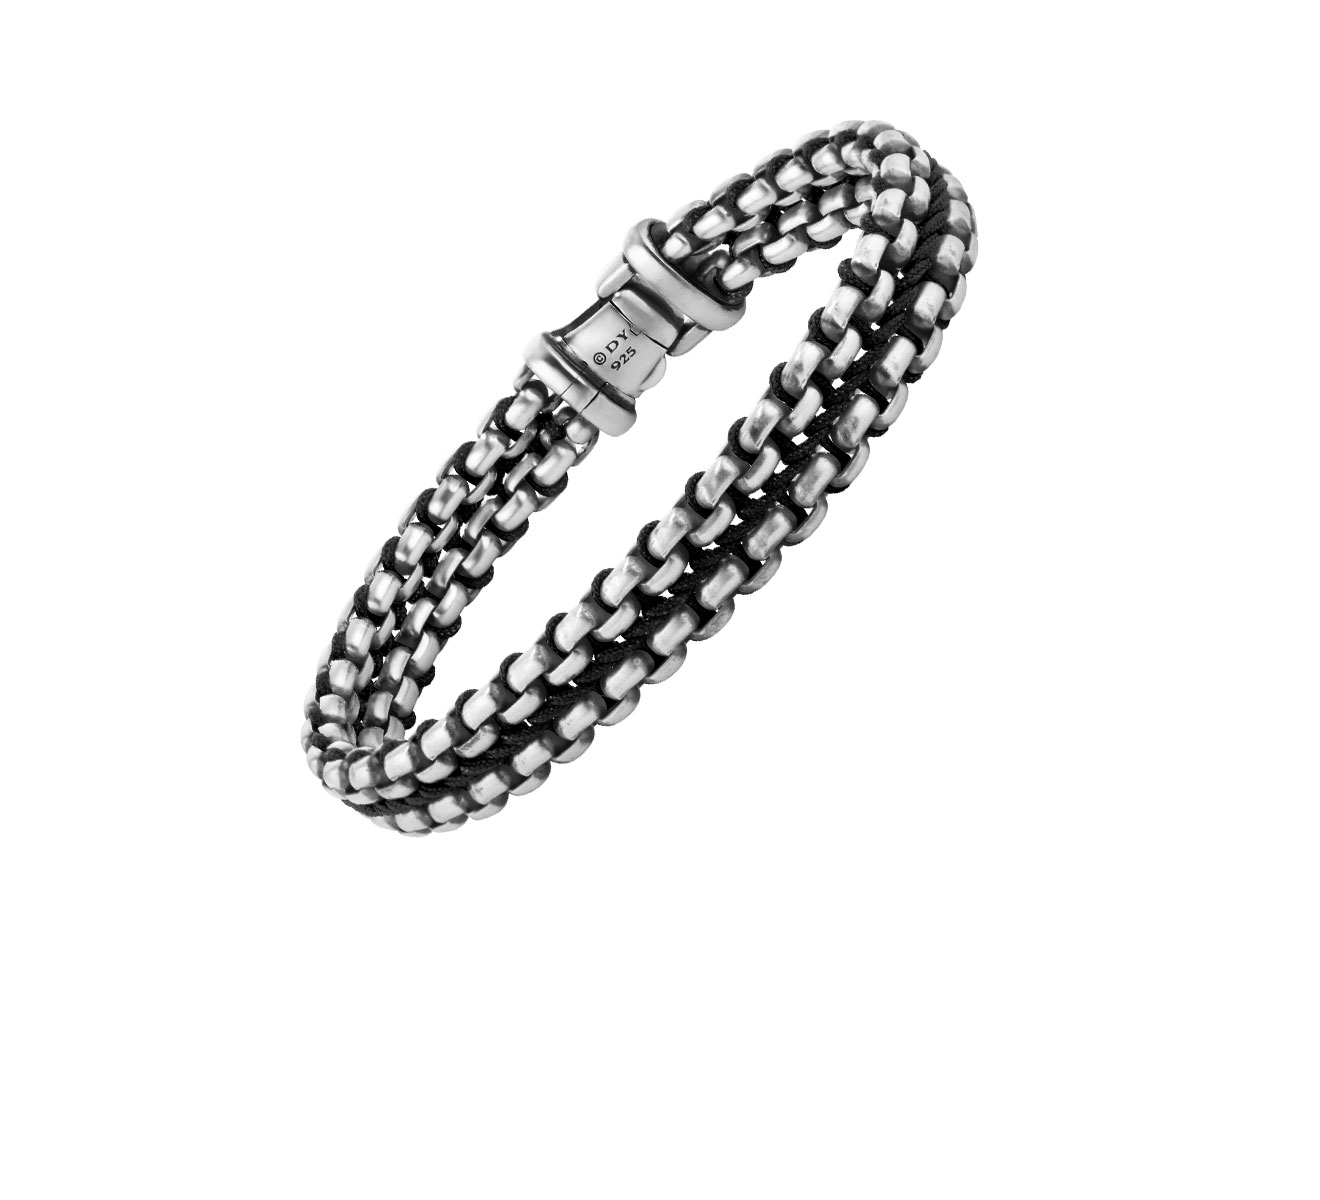 Браслет DAVID YURMAN Chain Mens B15886MSSBK - фото 1 – Mercury